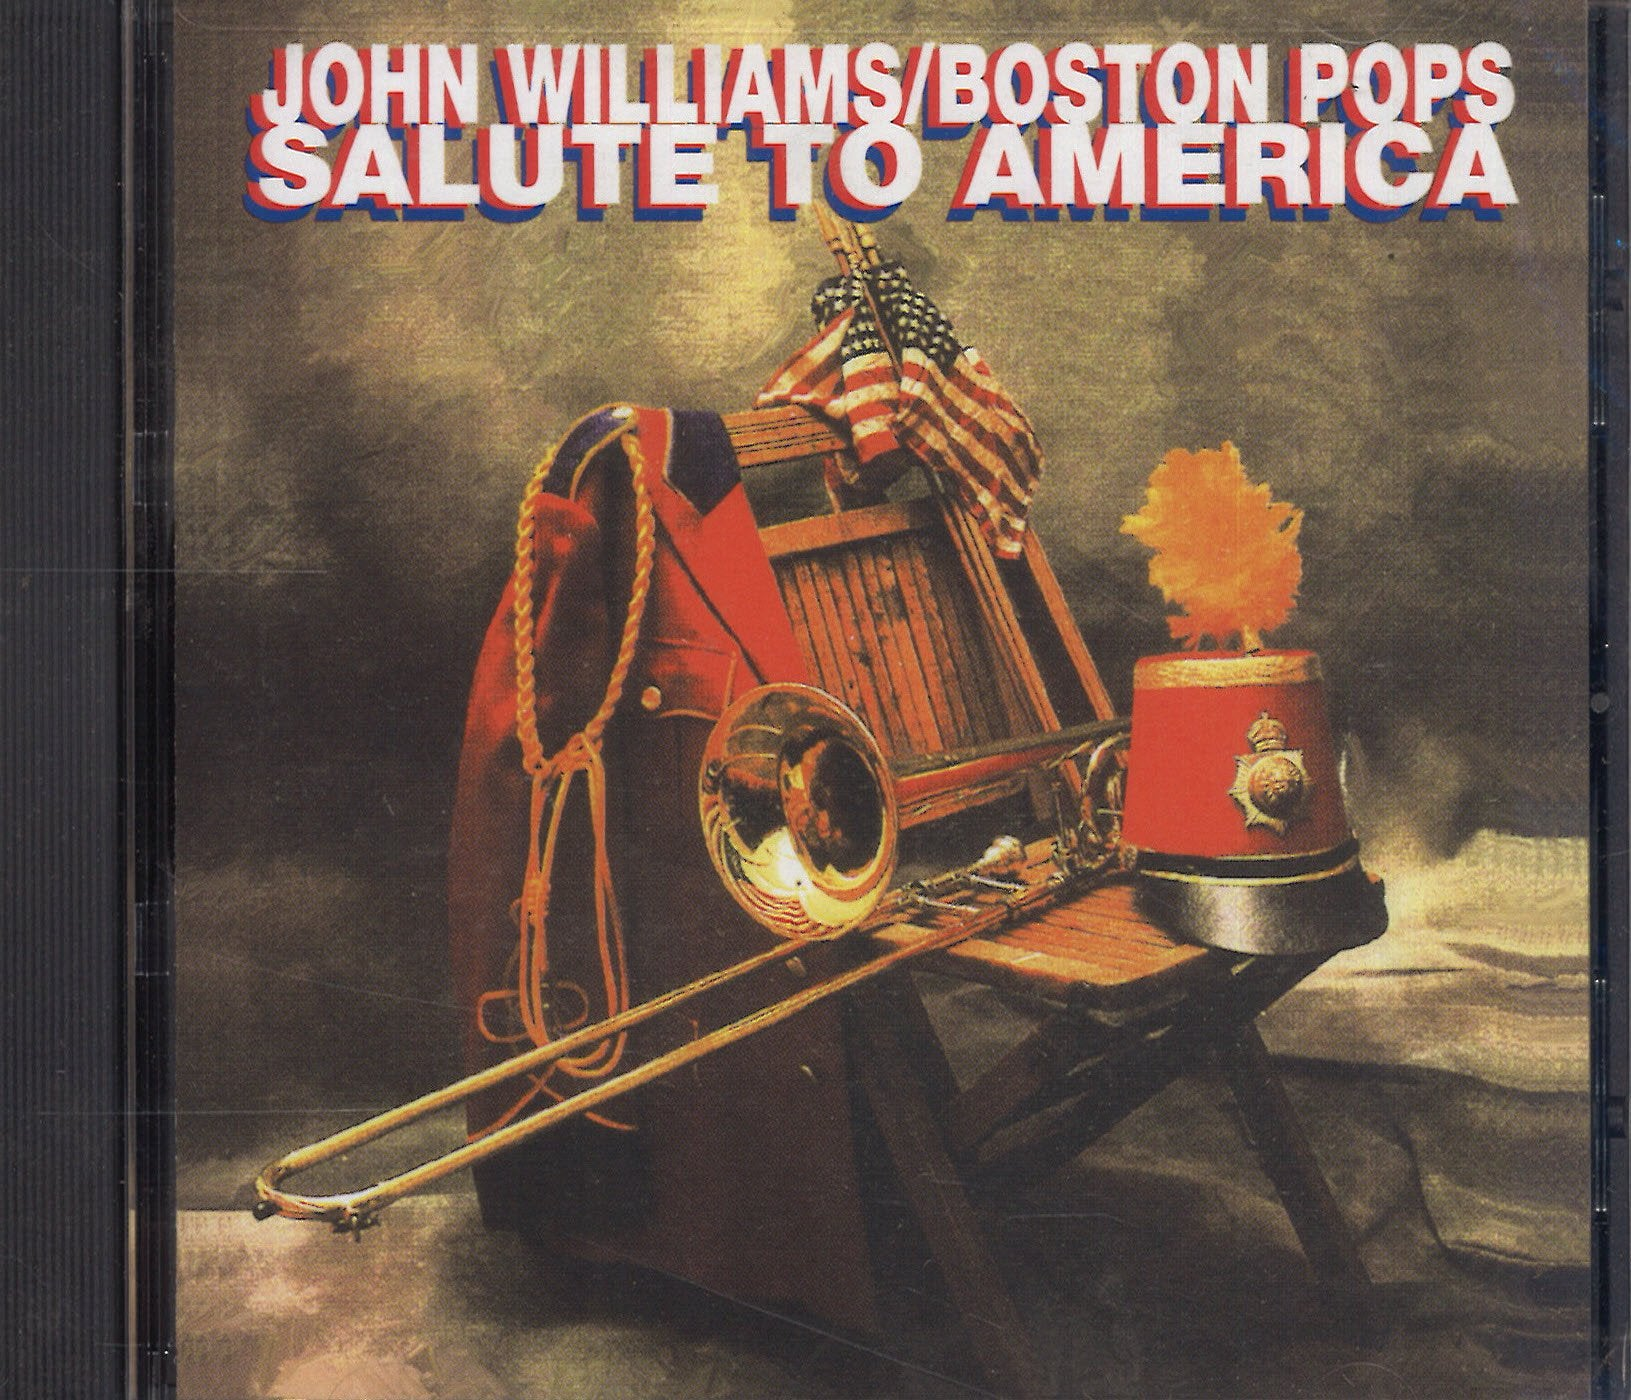 John Williams & Boston Pops Salute To America